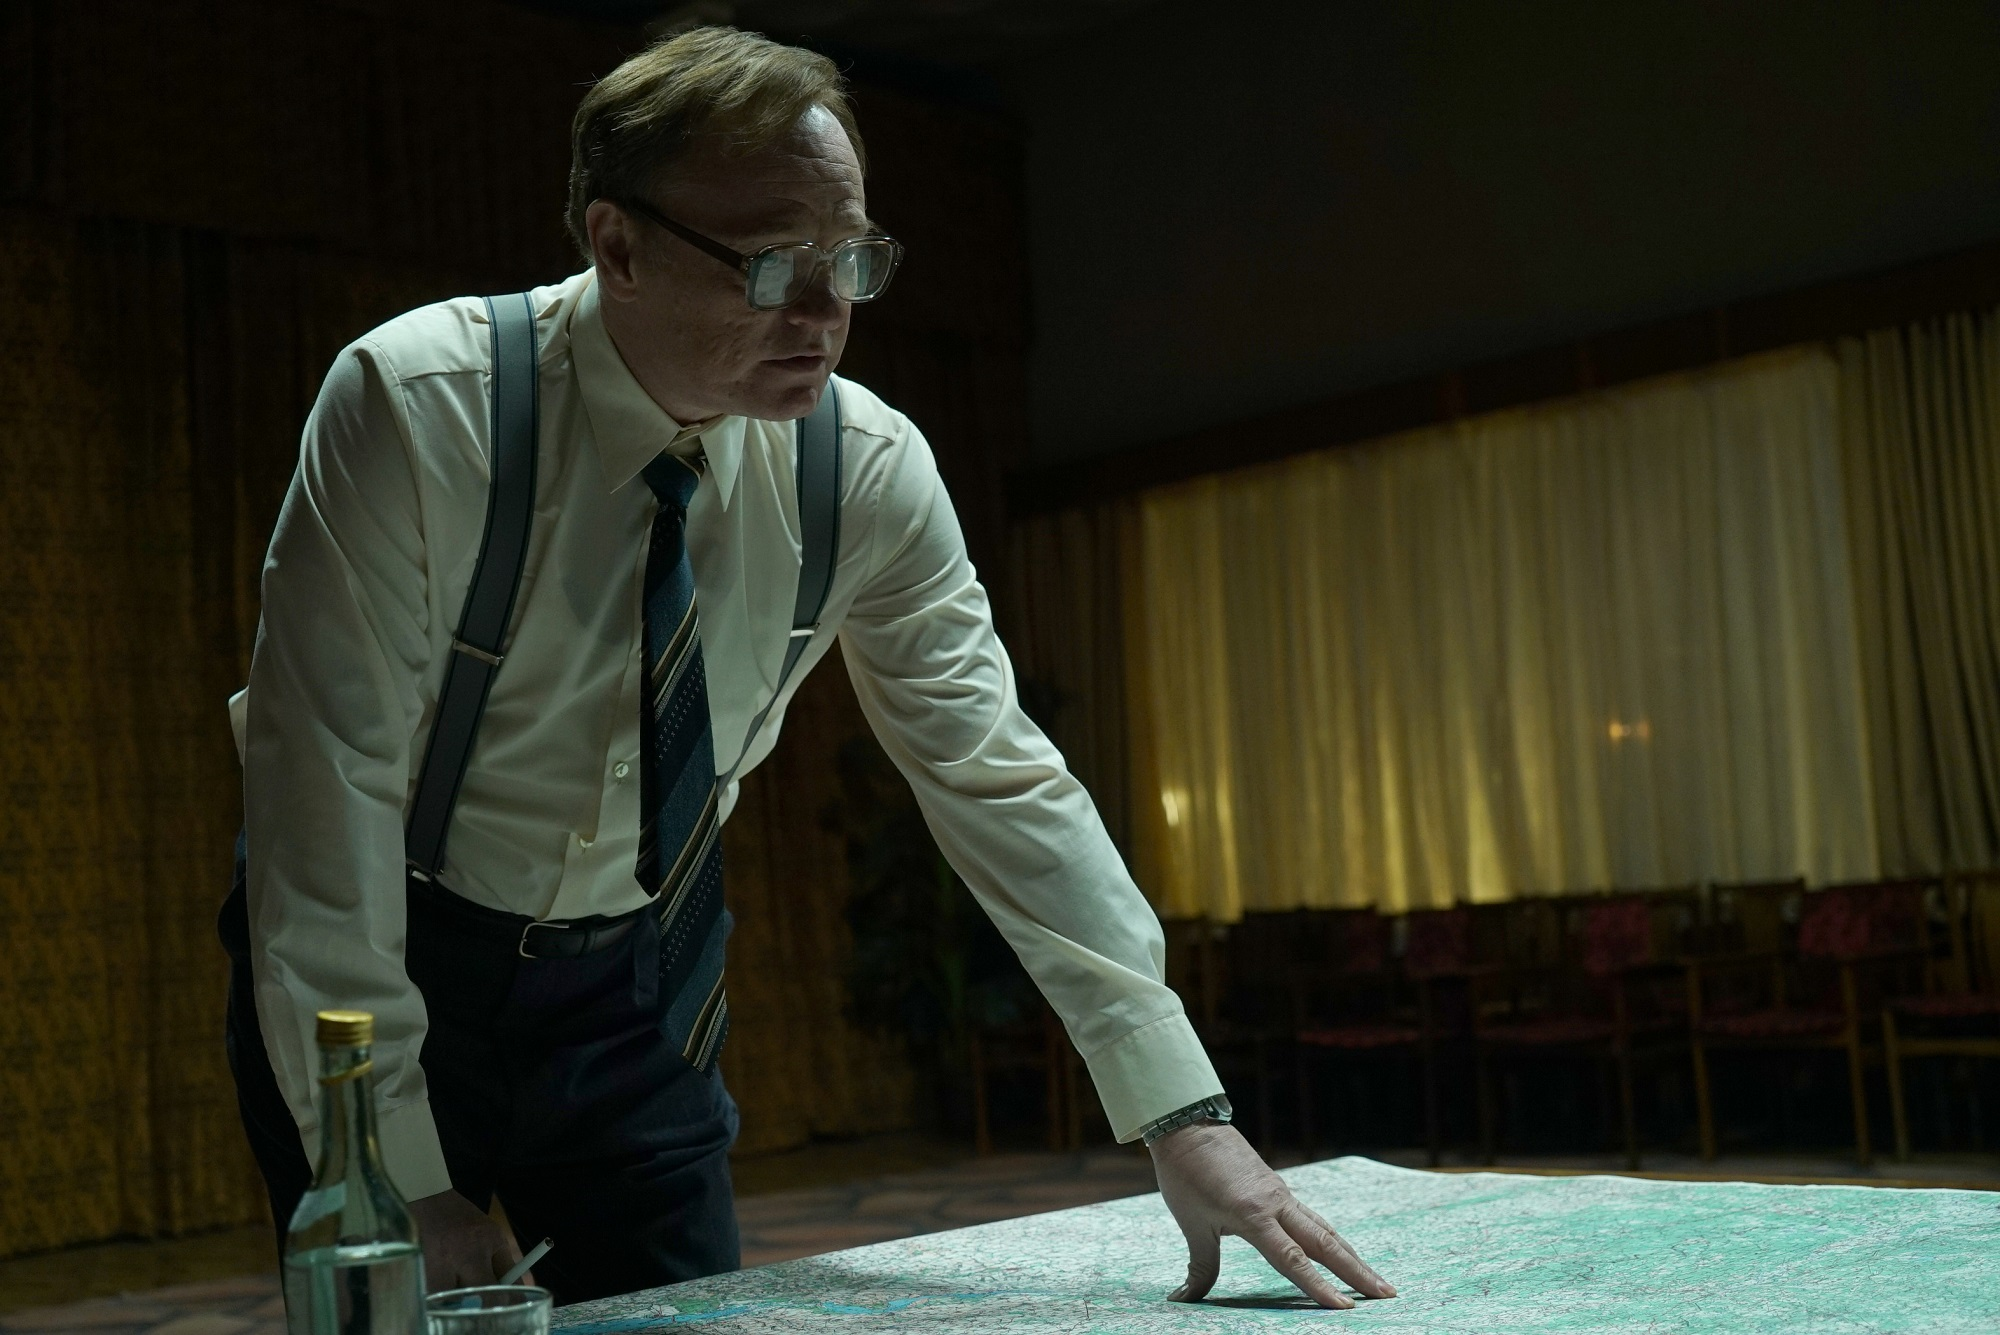 CHERNOBYL-Jared-Harris-as-Valery-Legasov-photo-credit-Liam-Daniel-HBO.jpg